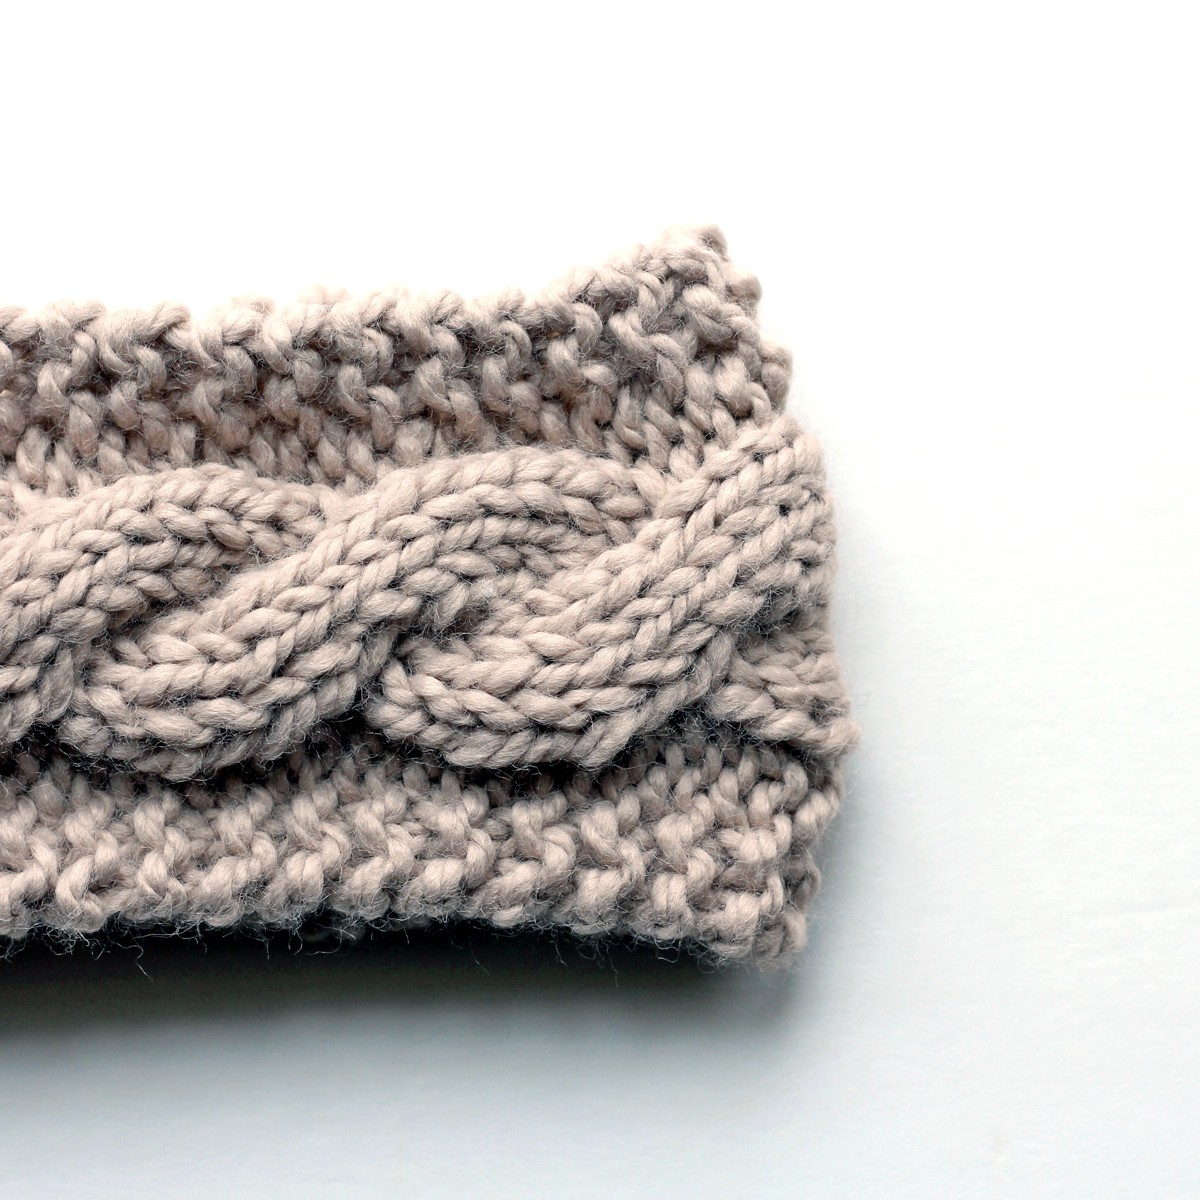 {FREE} FRIENDSHIP : Headband Knitting Pattern   Brome Fields